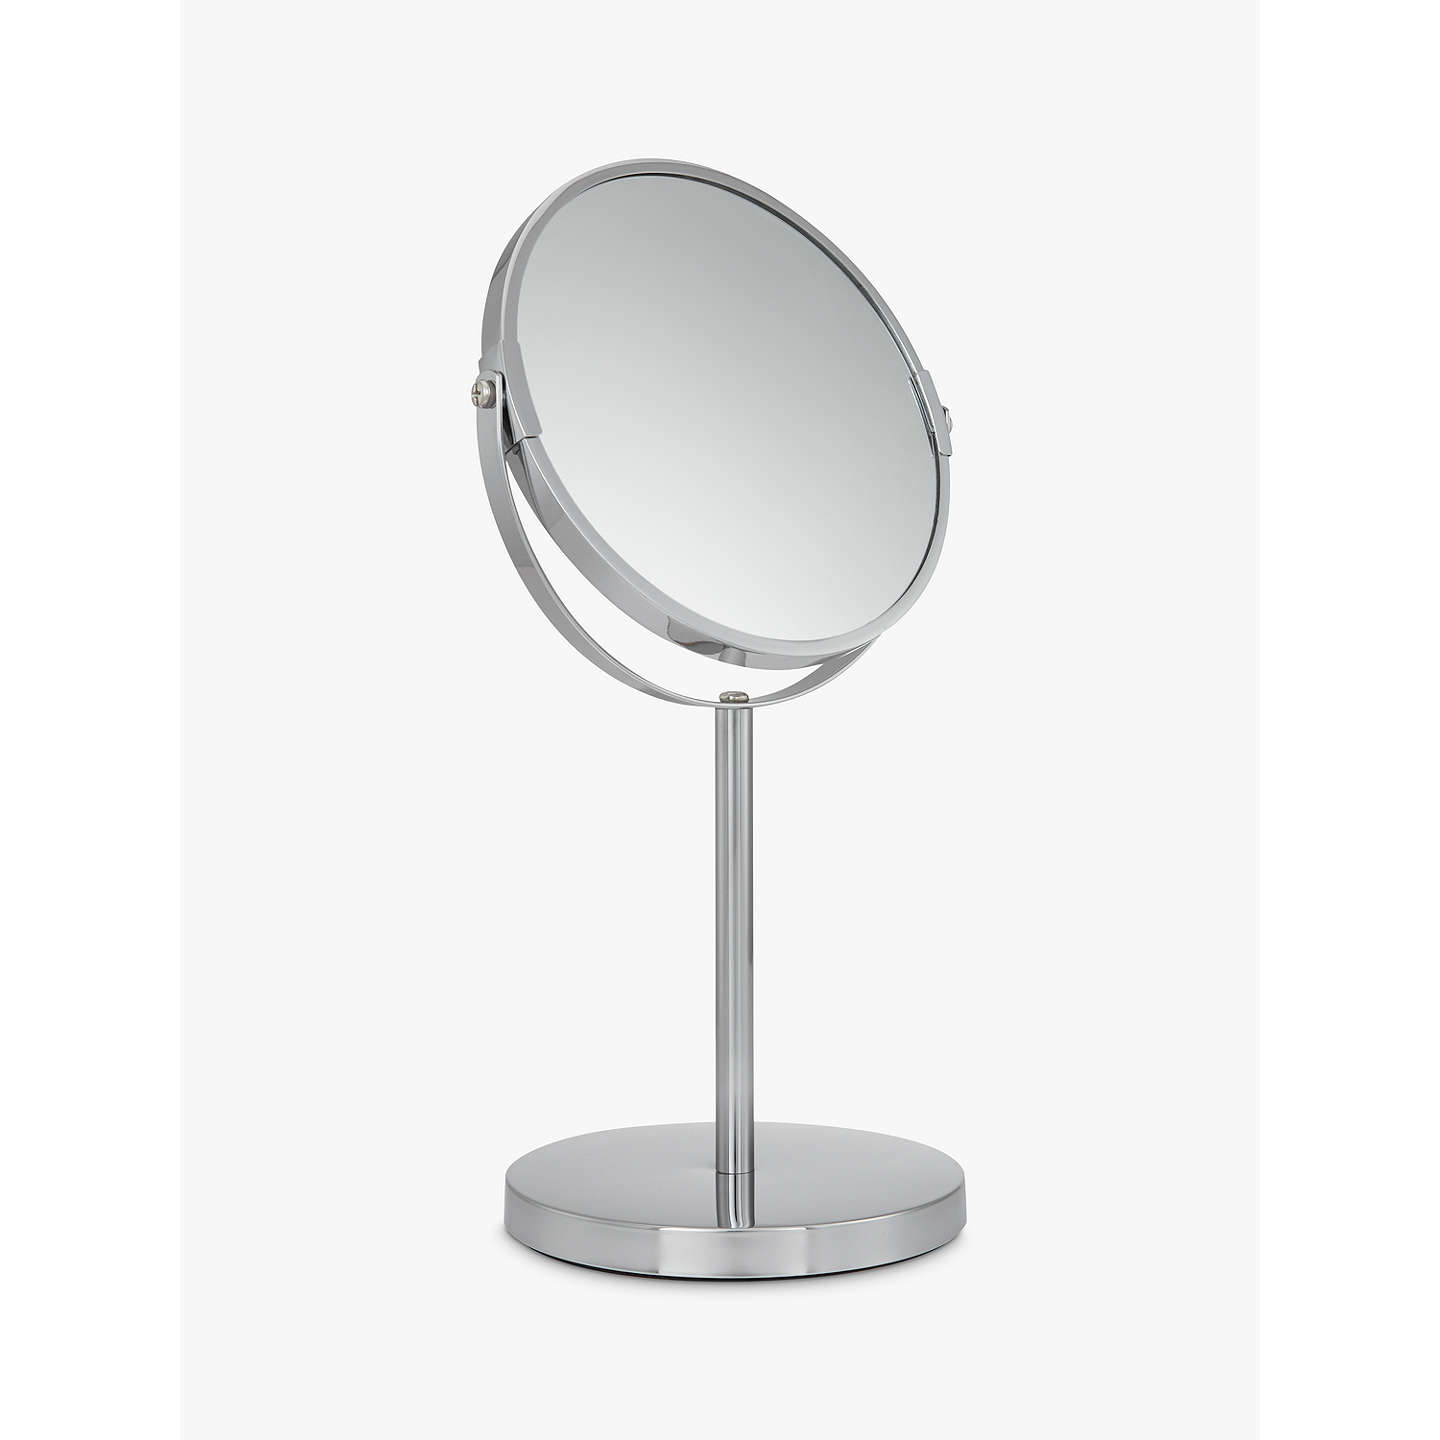 john lewis the basics pedestal mirror at john lewis. Black Bedroom Furniture Sets. Home Design Ideas